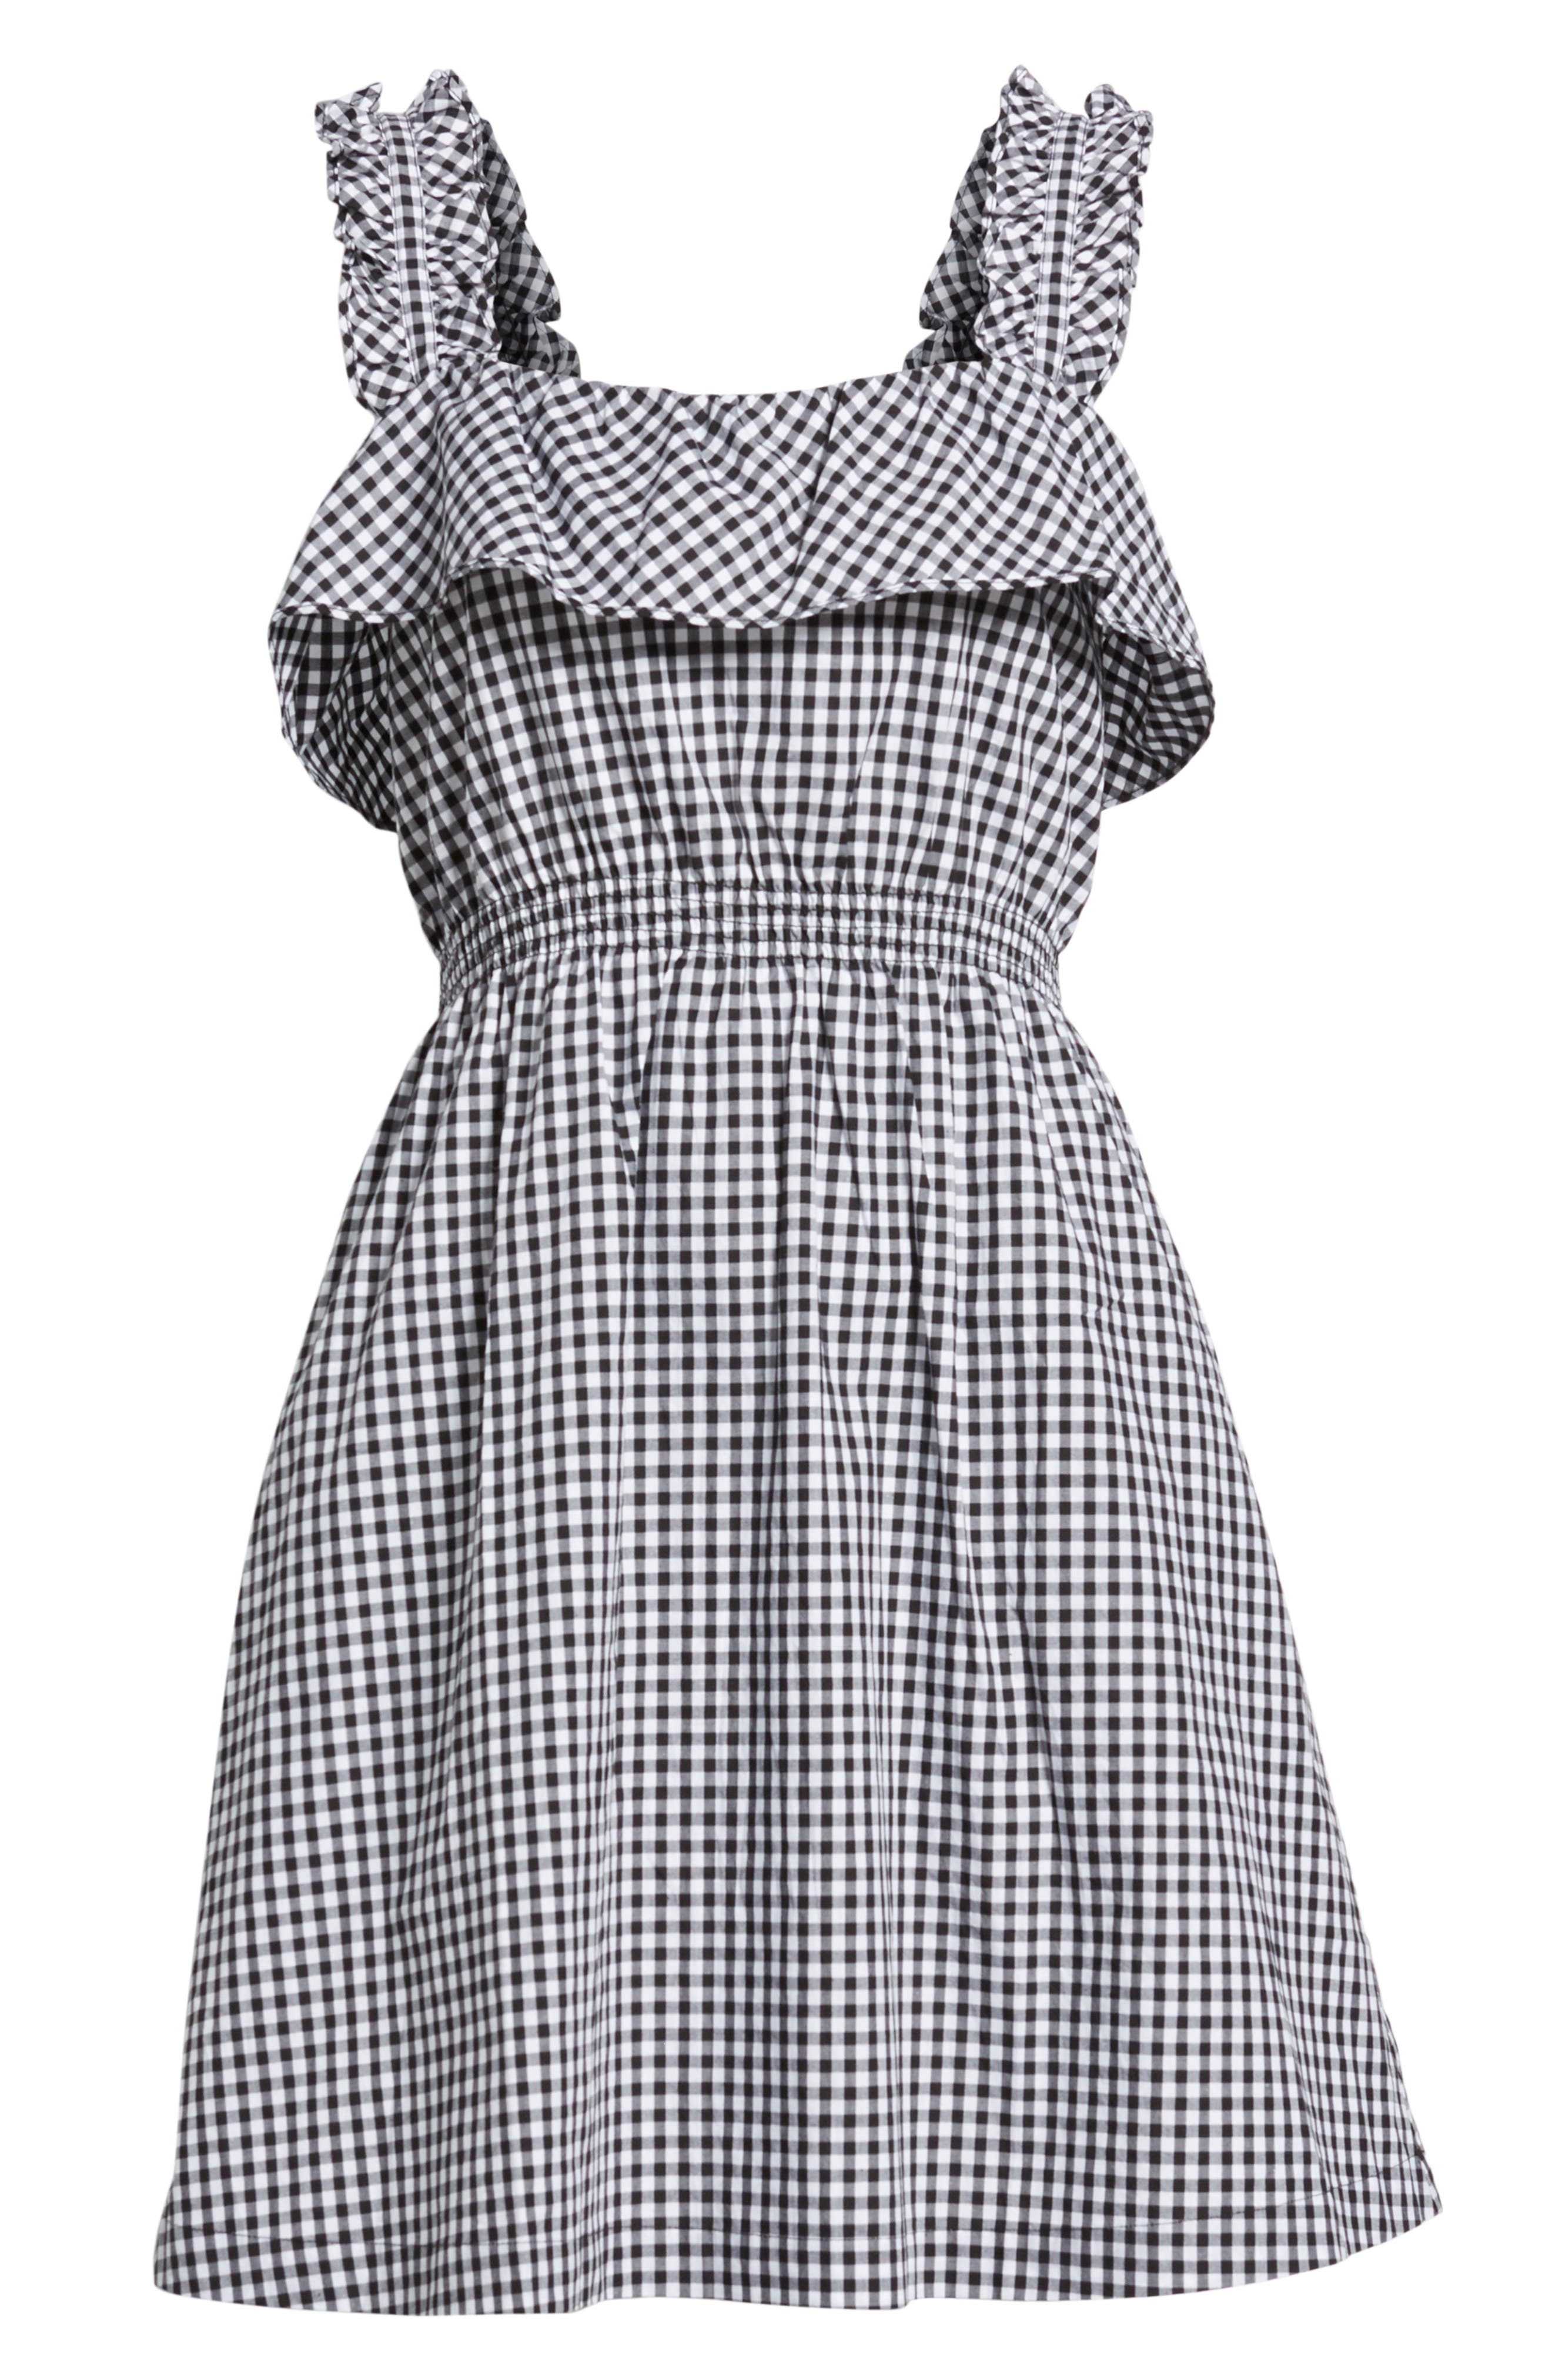 7 FOR ALL MANKIND<SUP>®</SUP>, Gingham Ruffle Dress, Alternate thumbnail 7, color, 005